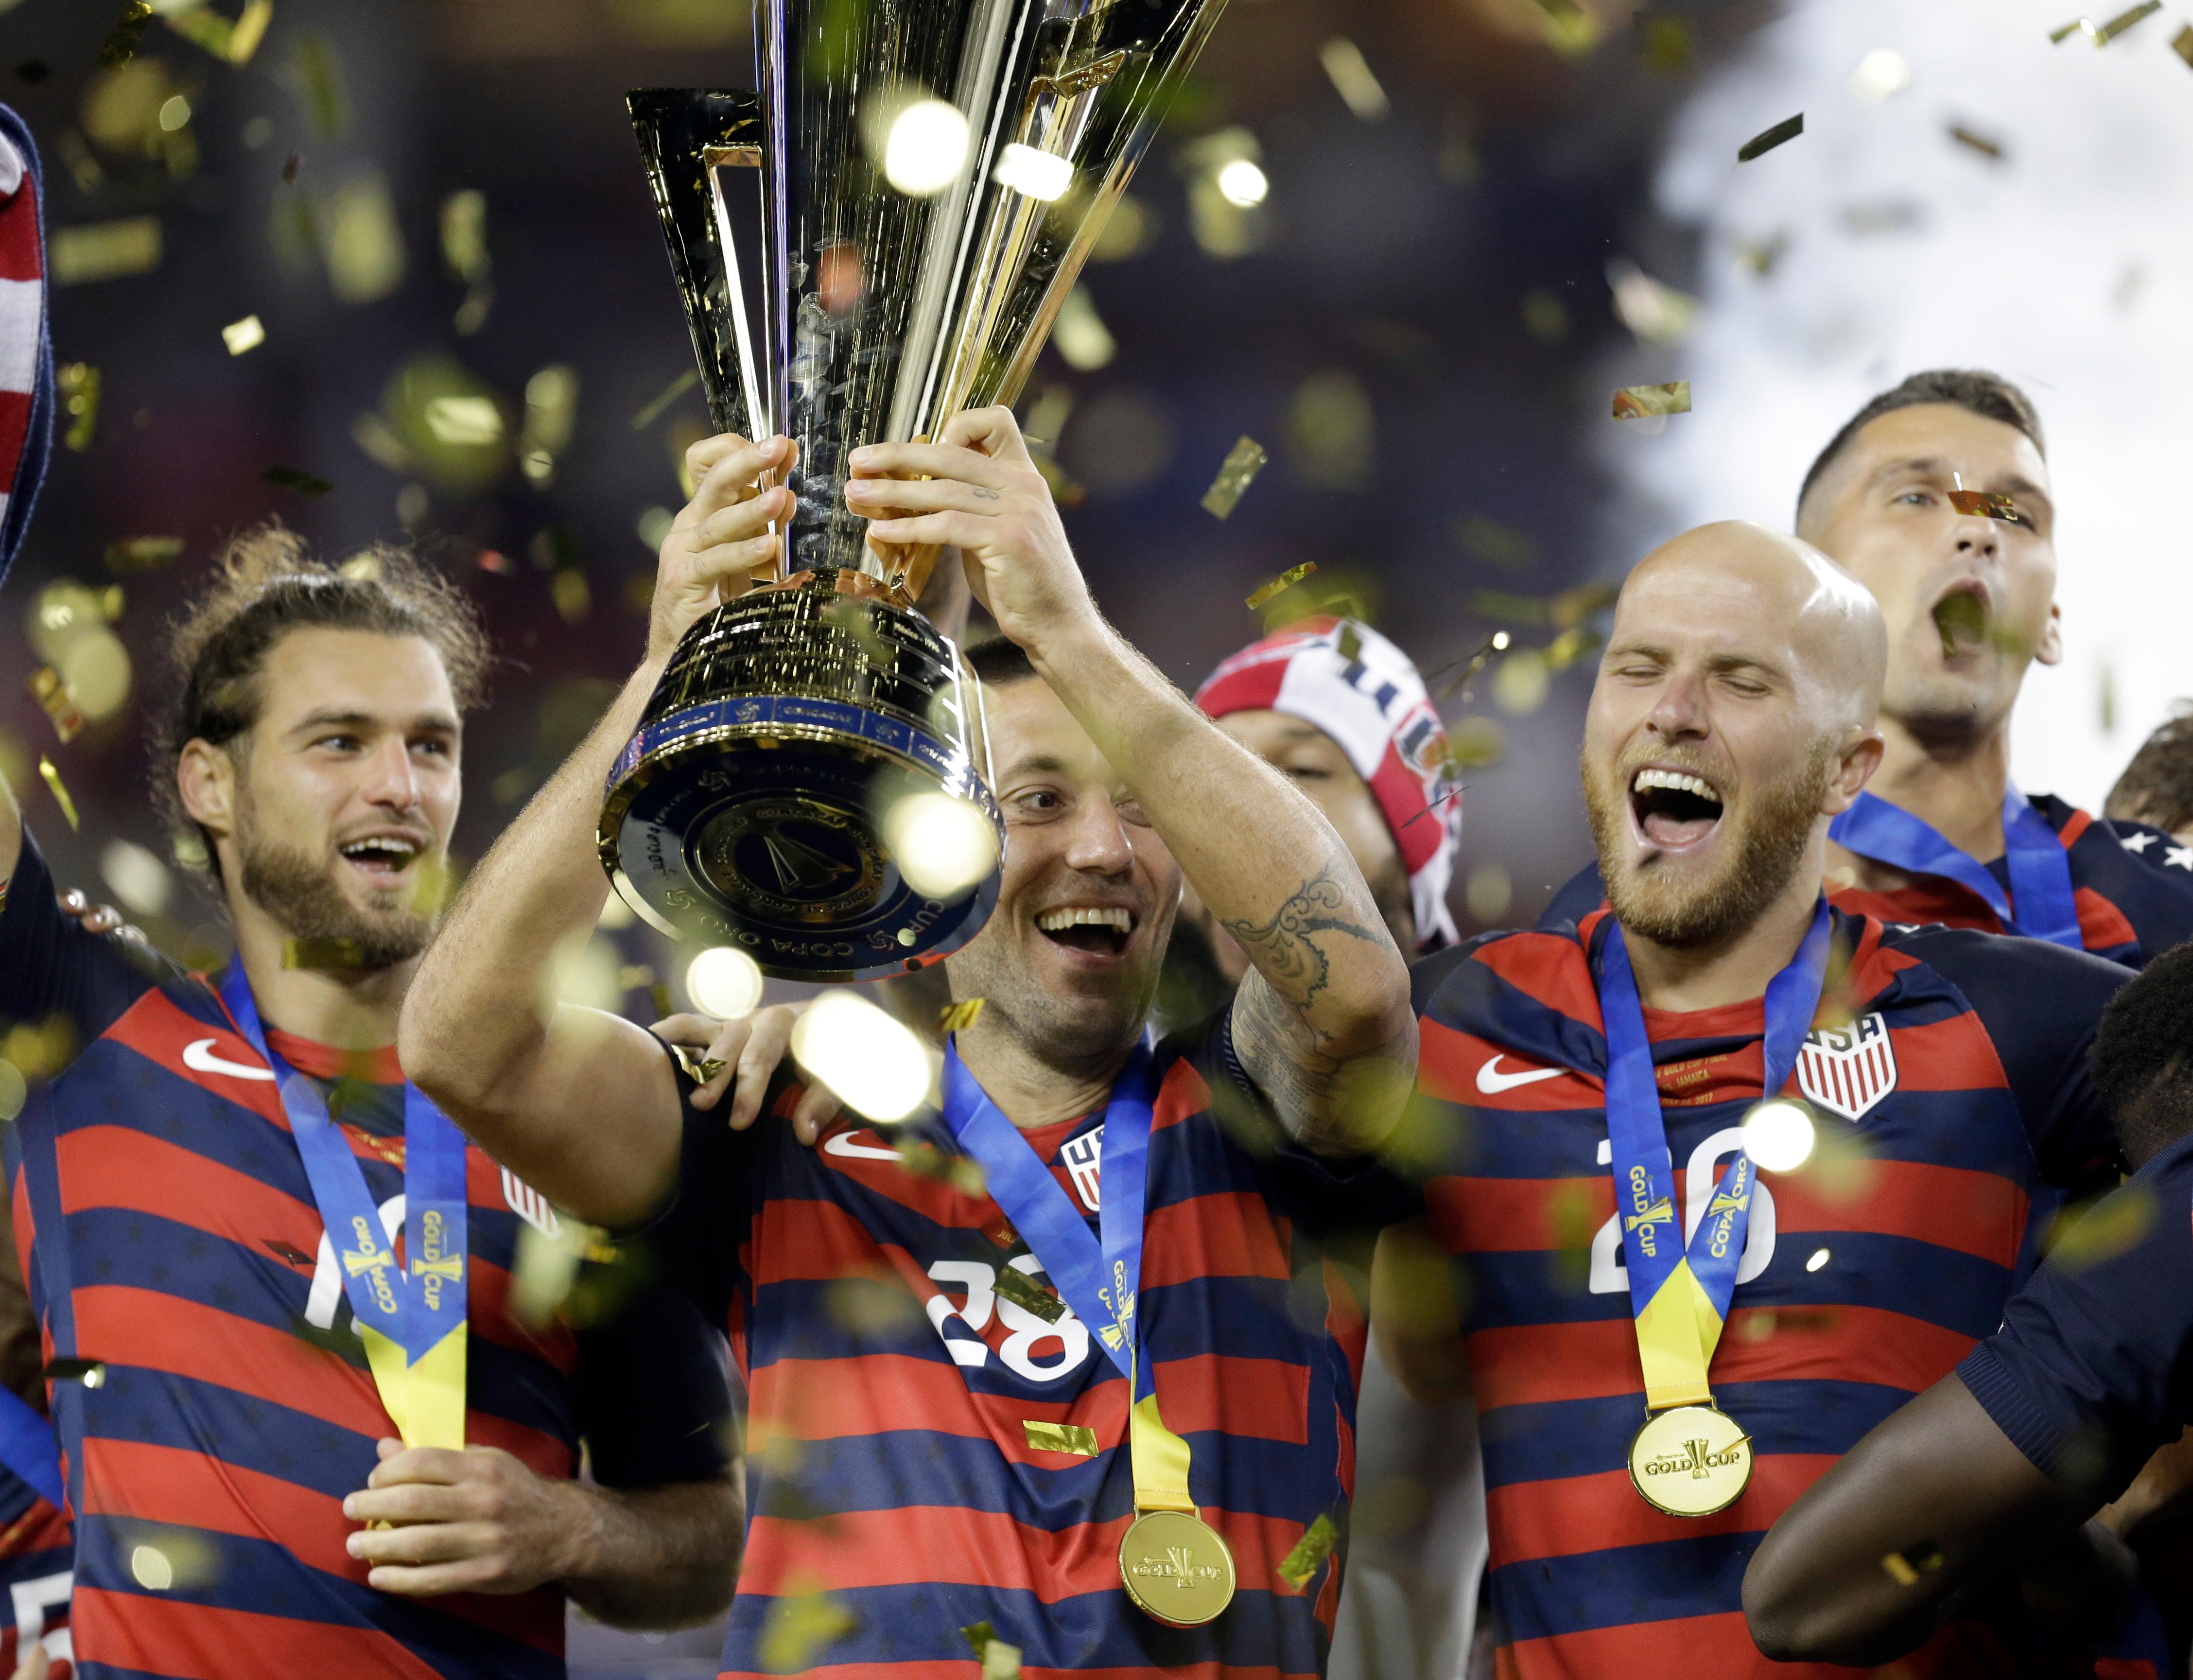 FILE - In this July 27, 2017, file photo, United States' Clint Dempsey raises the championship trophy after the United States beat Jamaica 2-1 in the Gold Cup final soccer match in Santa Clara, Calif. Dempsey has been named the MLS Comeback Player of the Year after a heart condition in 2016 put his career in jeopardy. Dempsey was the choice after scoring 12 goals in the 2017 regular season and reclaiming a place on the U.S. national team before the Americans fell short in in World Cup qualifying. (AP Photo/Ben Margot, file)